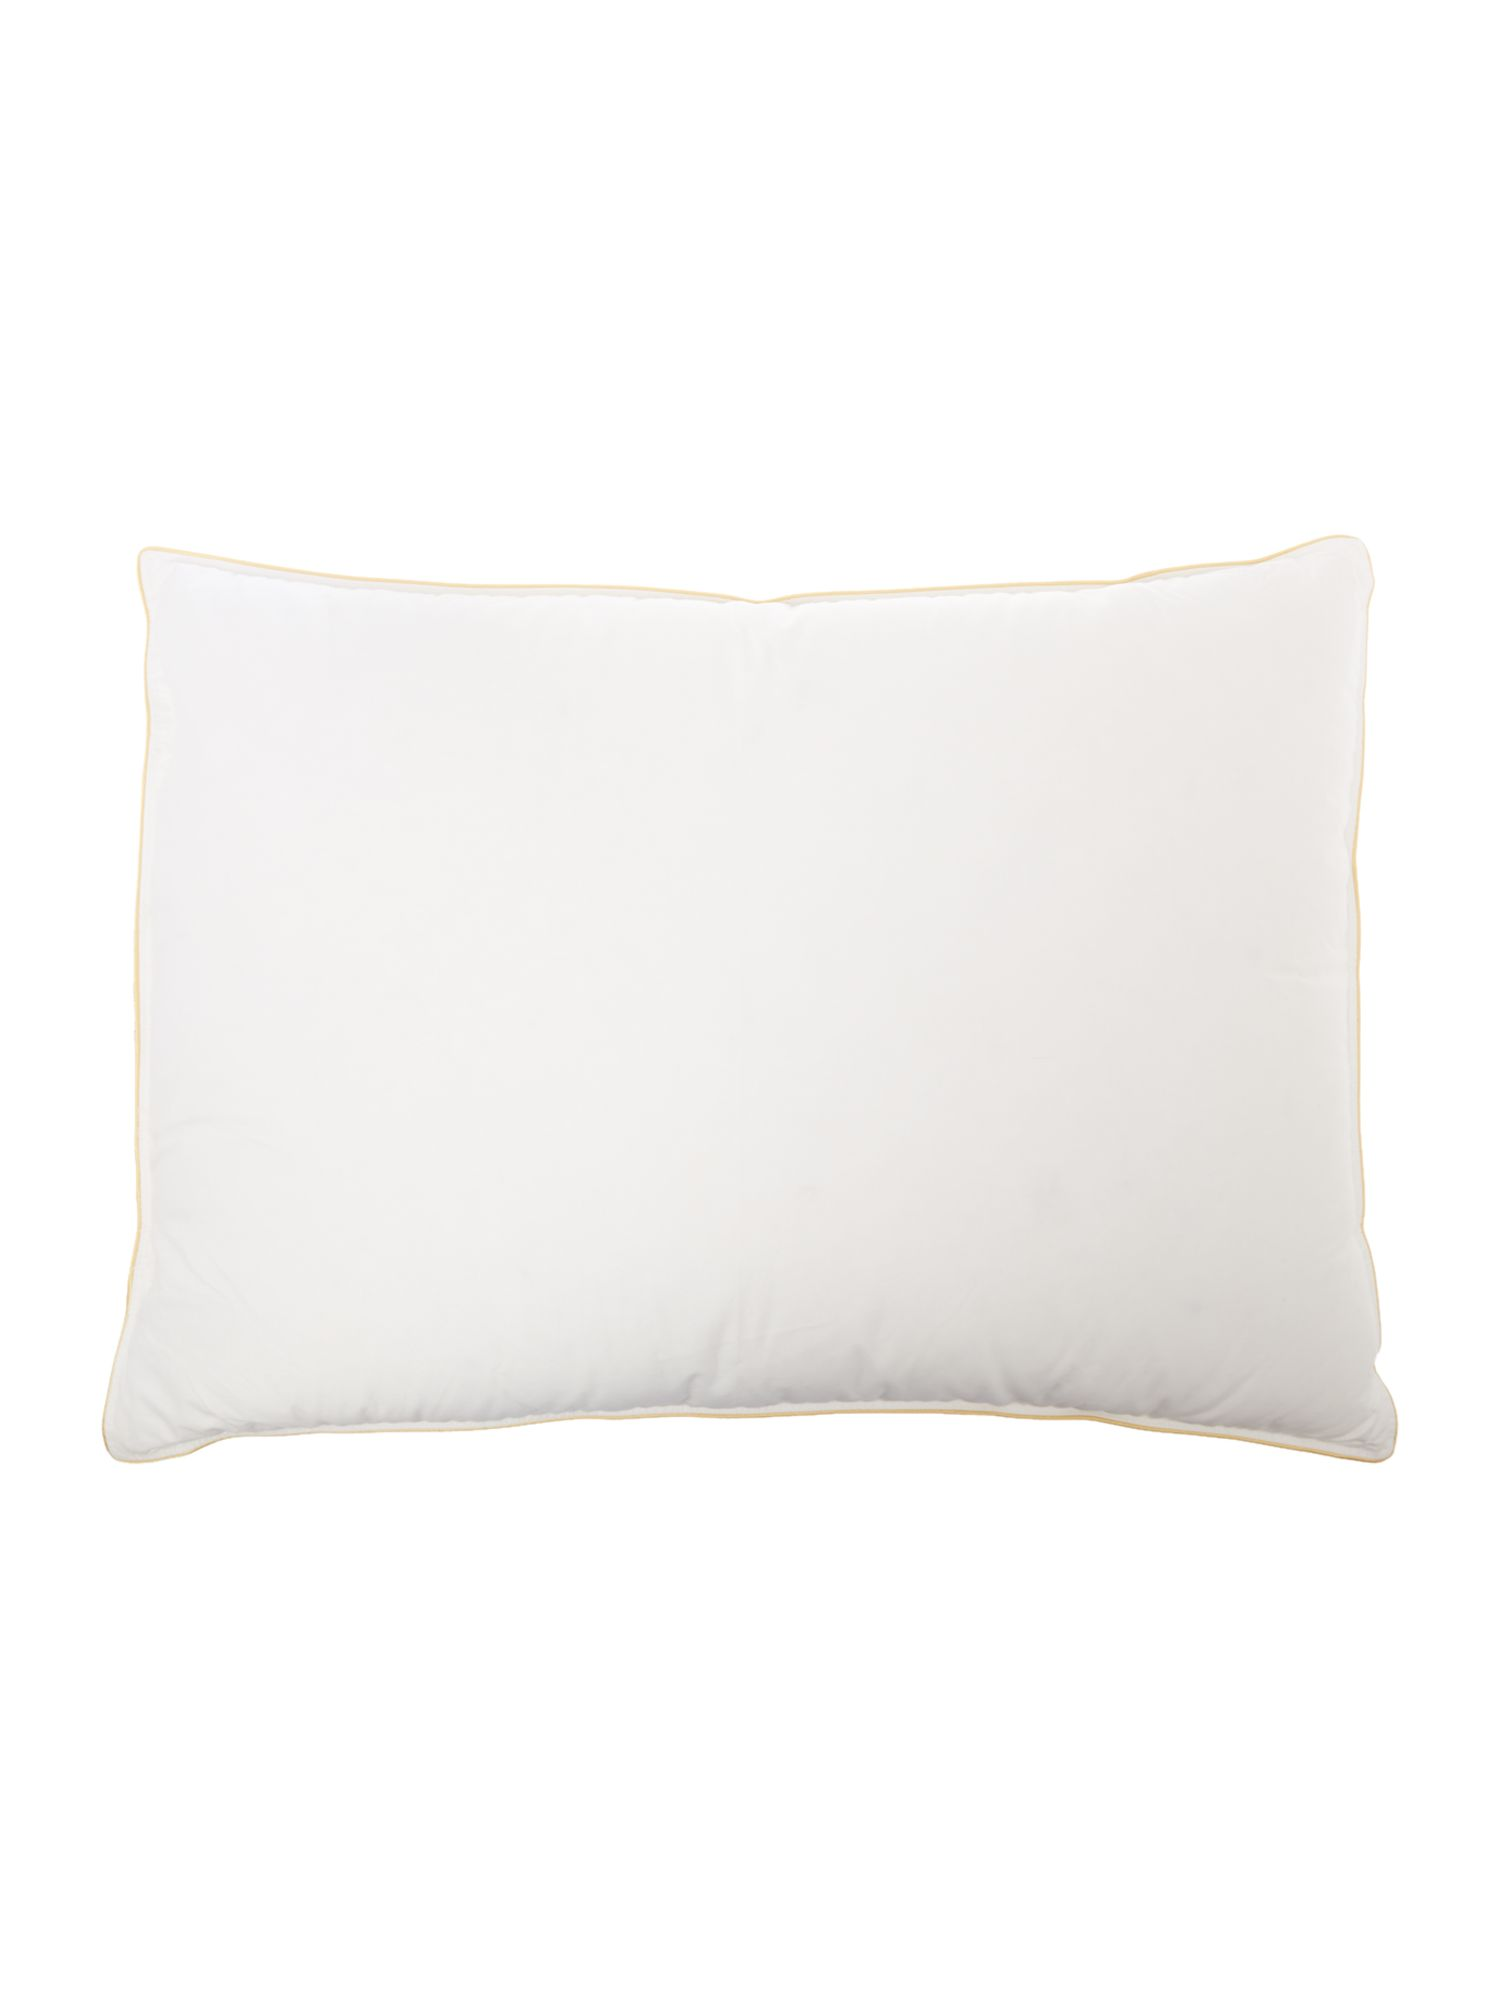 Image of Quilts of Denmark Canadian White Goose Down Surround Pillow